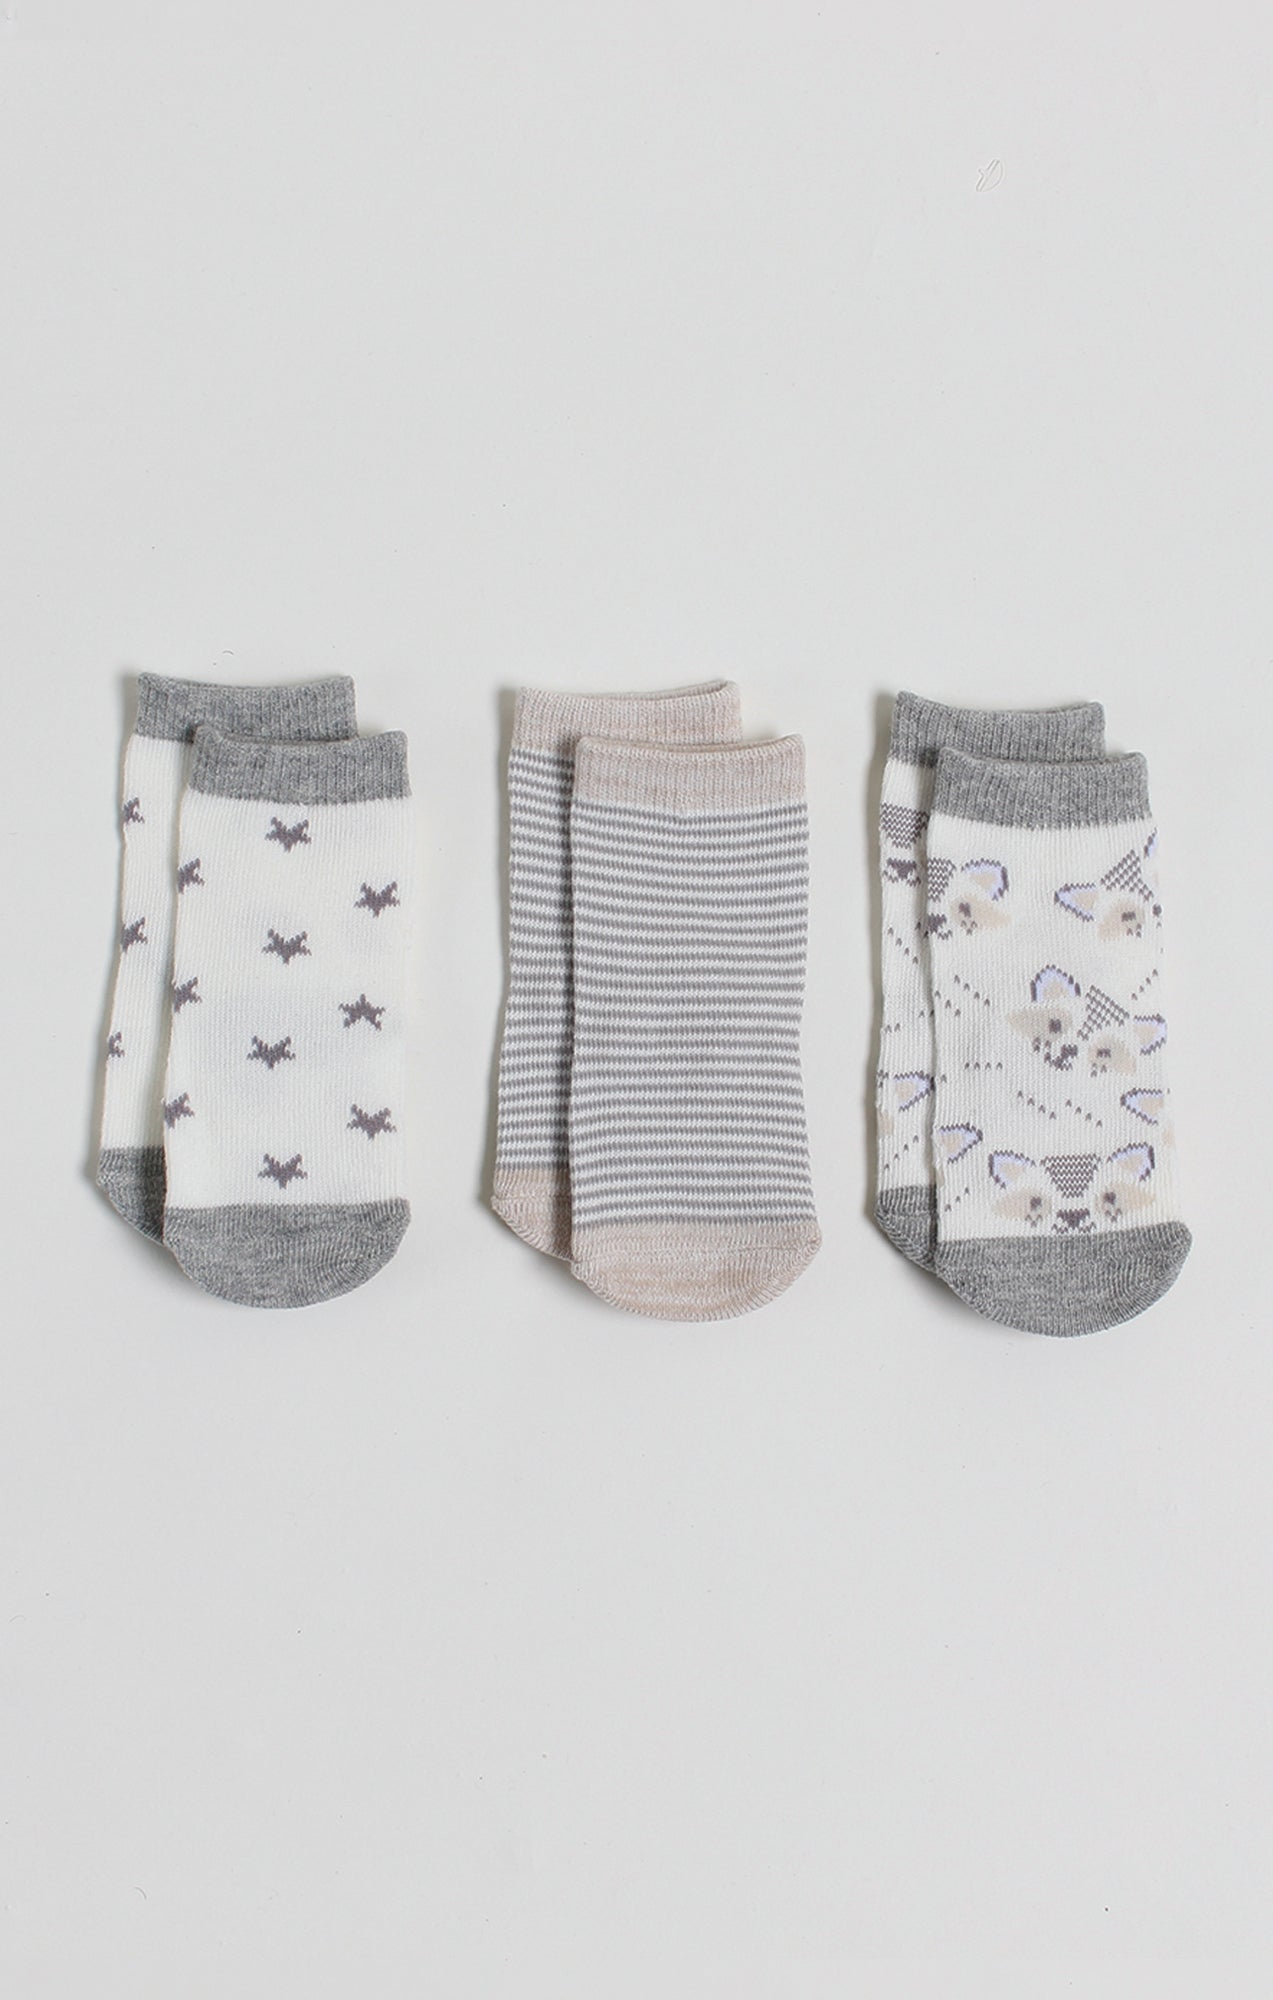 Socks - 3 Pk Neutral Baby Crew Socks | Baby Accessories